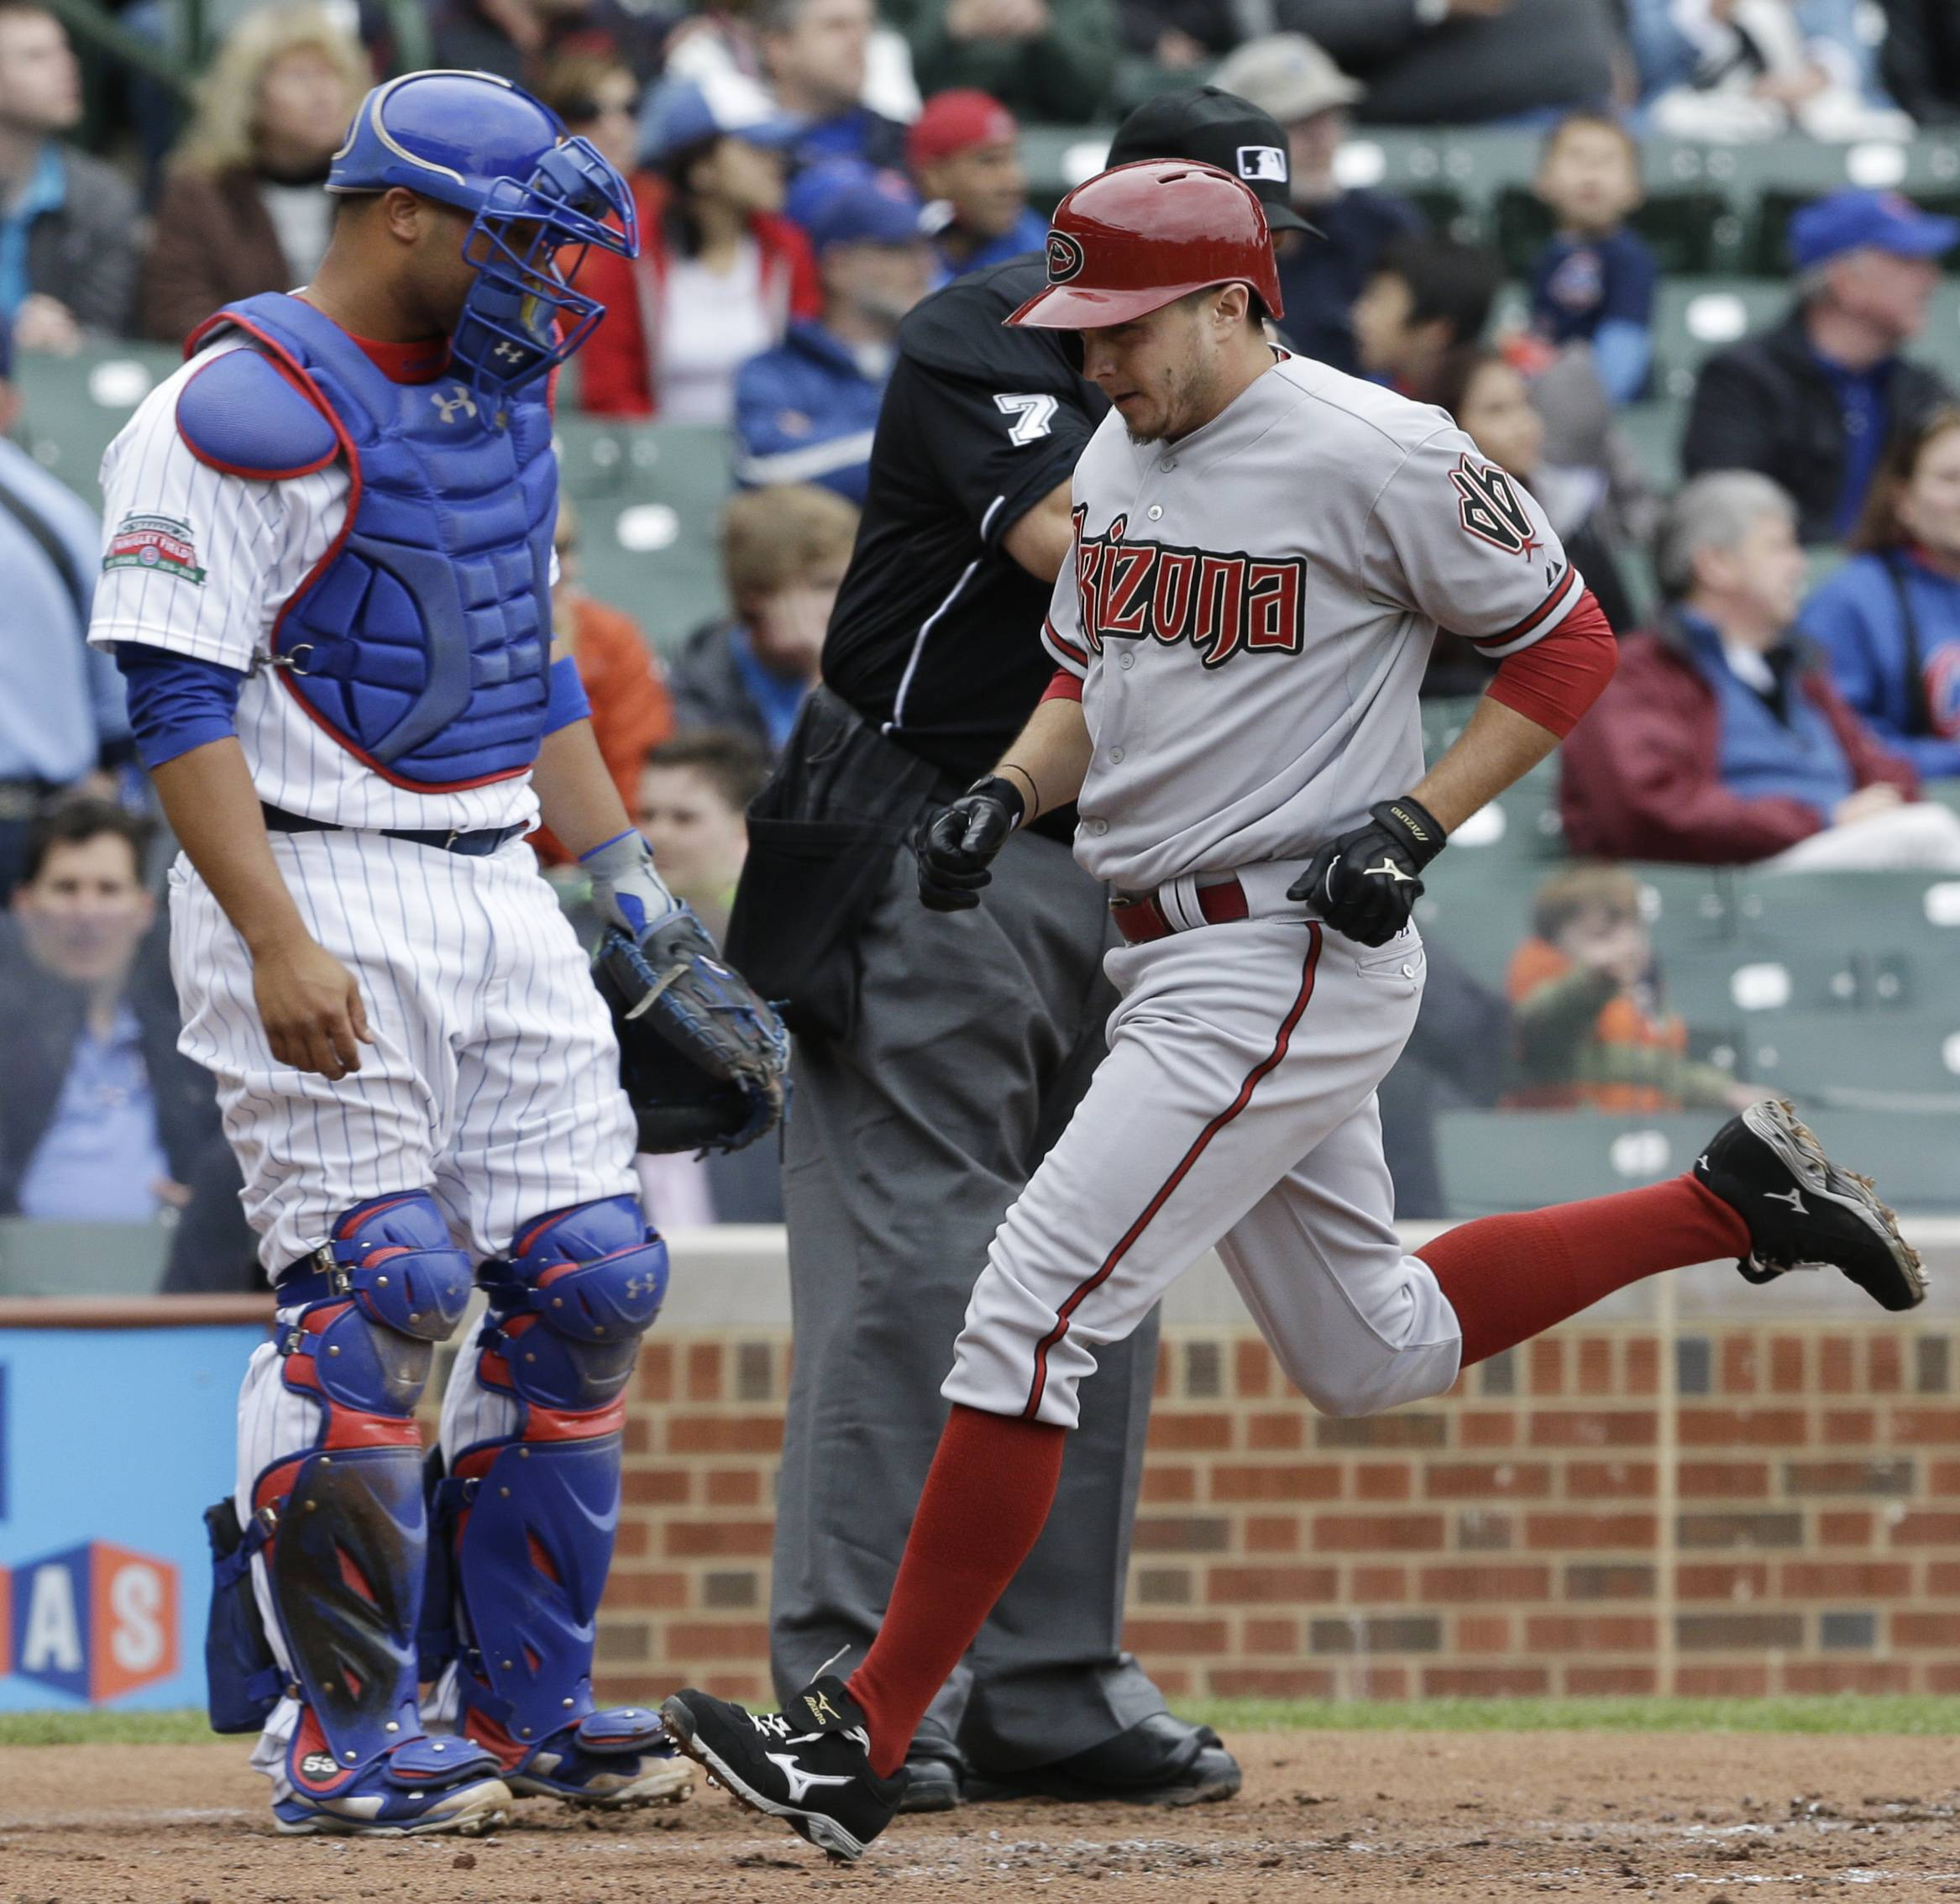 Arizona Diamondbacks' Tony Campana, right, scores on a single hit by Mike Bolsinger as Chicago Cubs catcher Welington Castillo looks down during the second inning of a baseball game in Chicago, Thursday, April 24, 2014. (AP Photo/Nam Y. Huh)